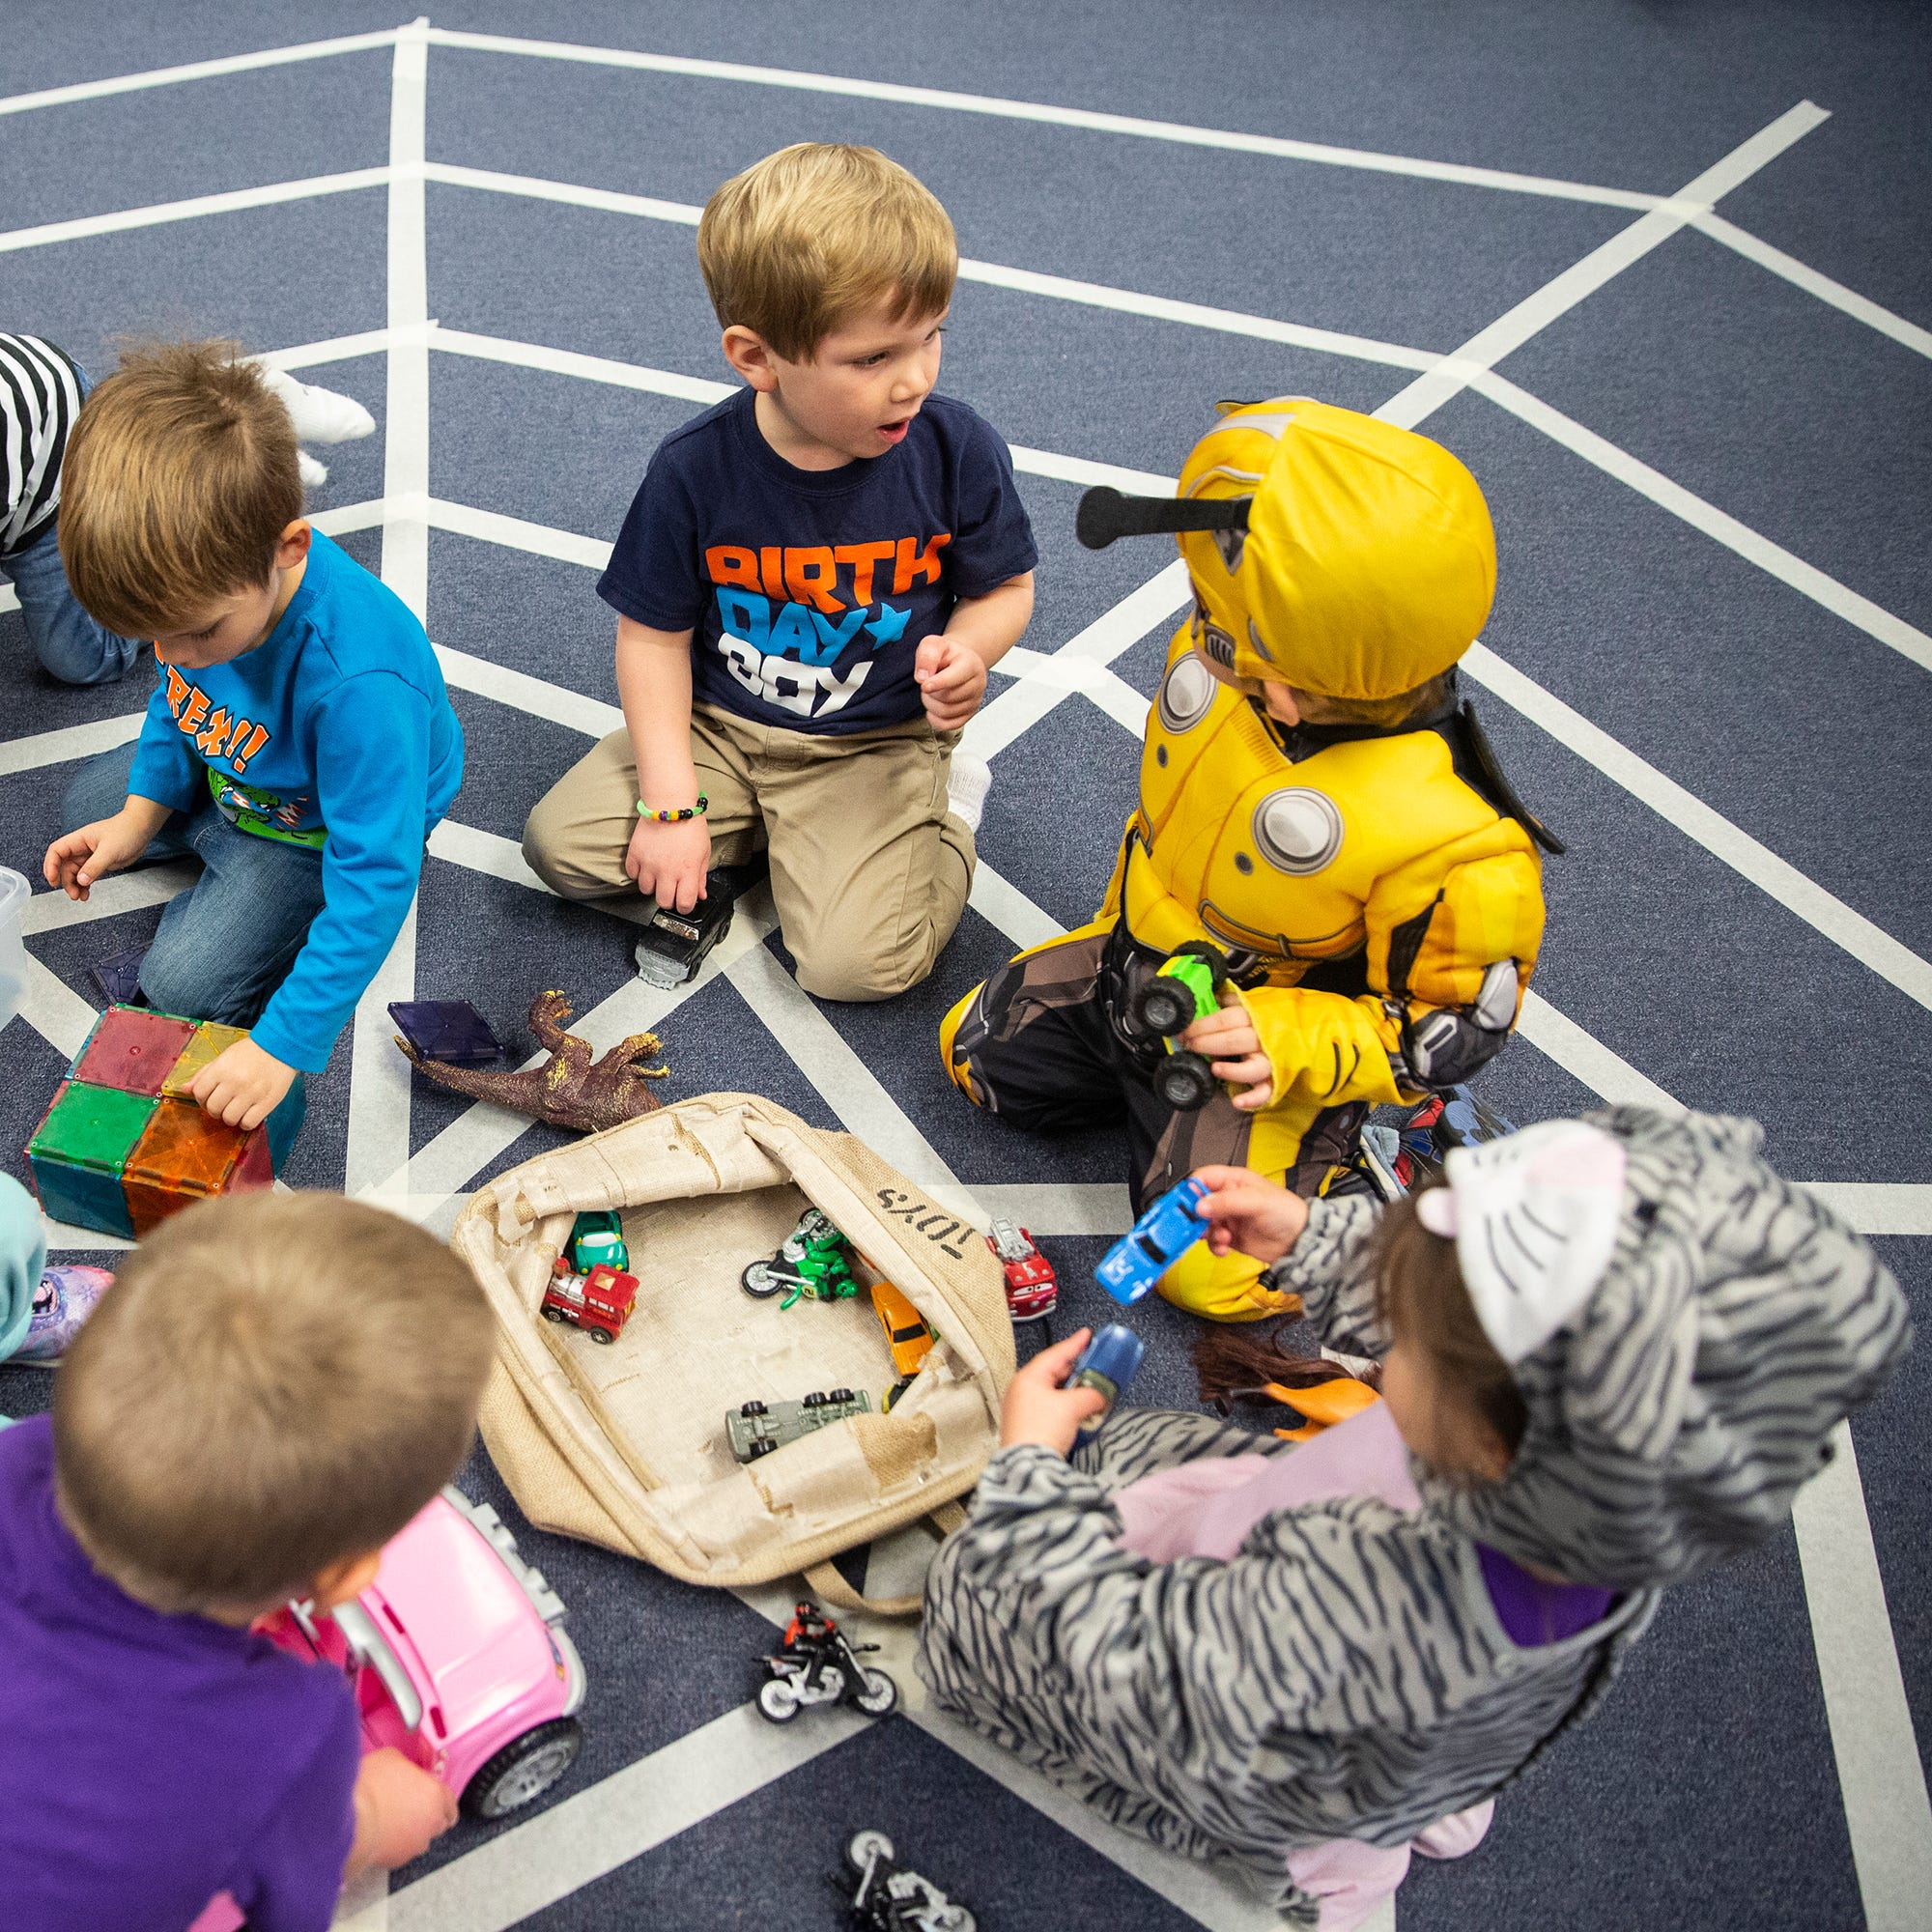 A group of students at Curious Kids Childcare play with toys on Wednesday, Oct. 31, 2018, in Centerville.